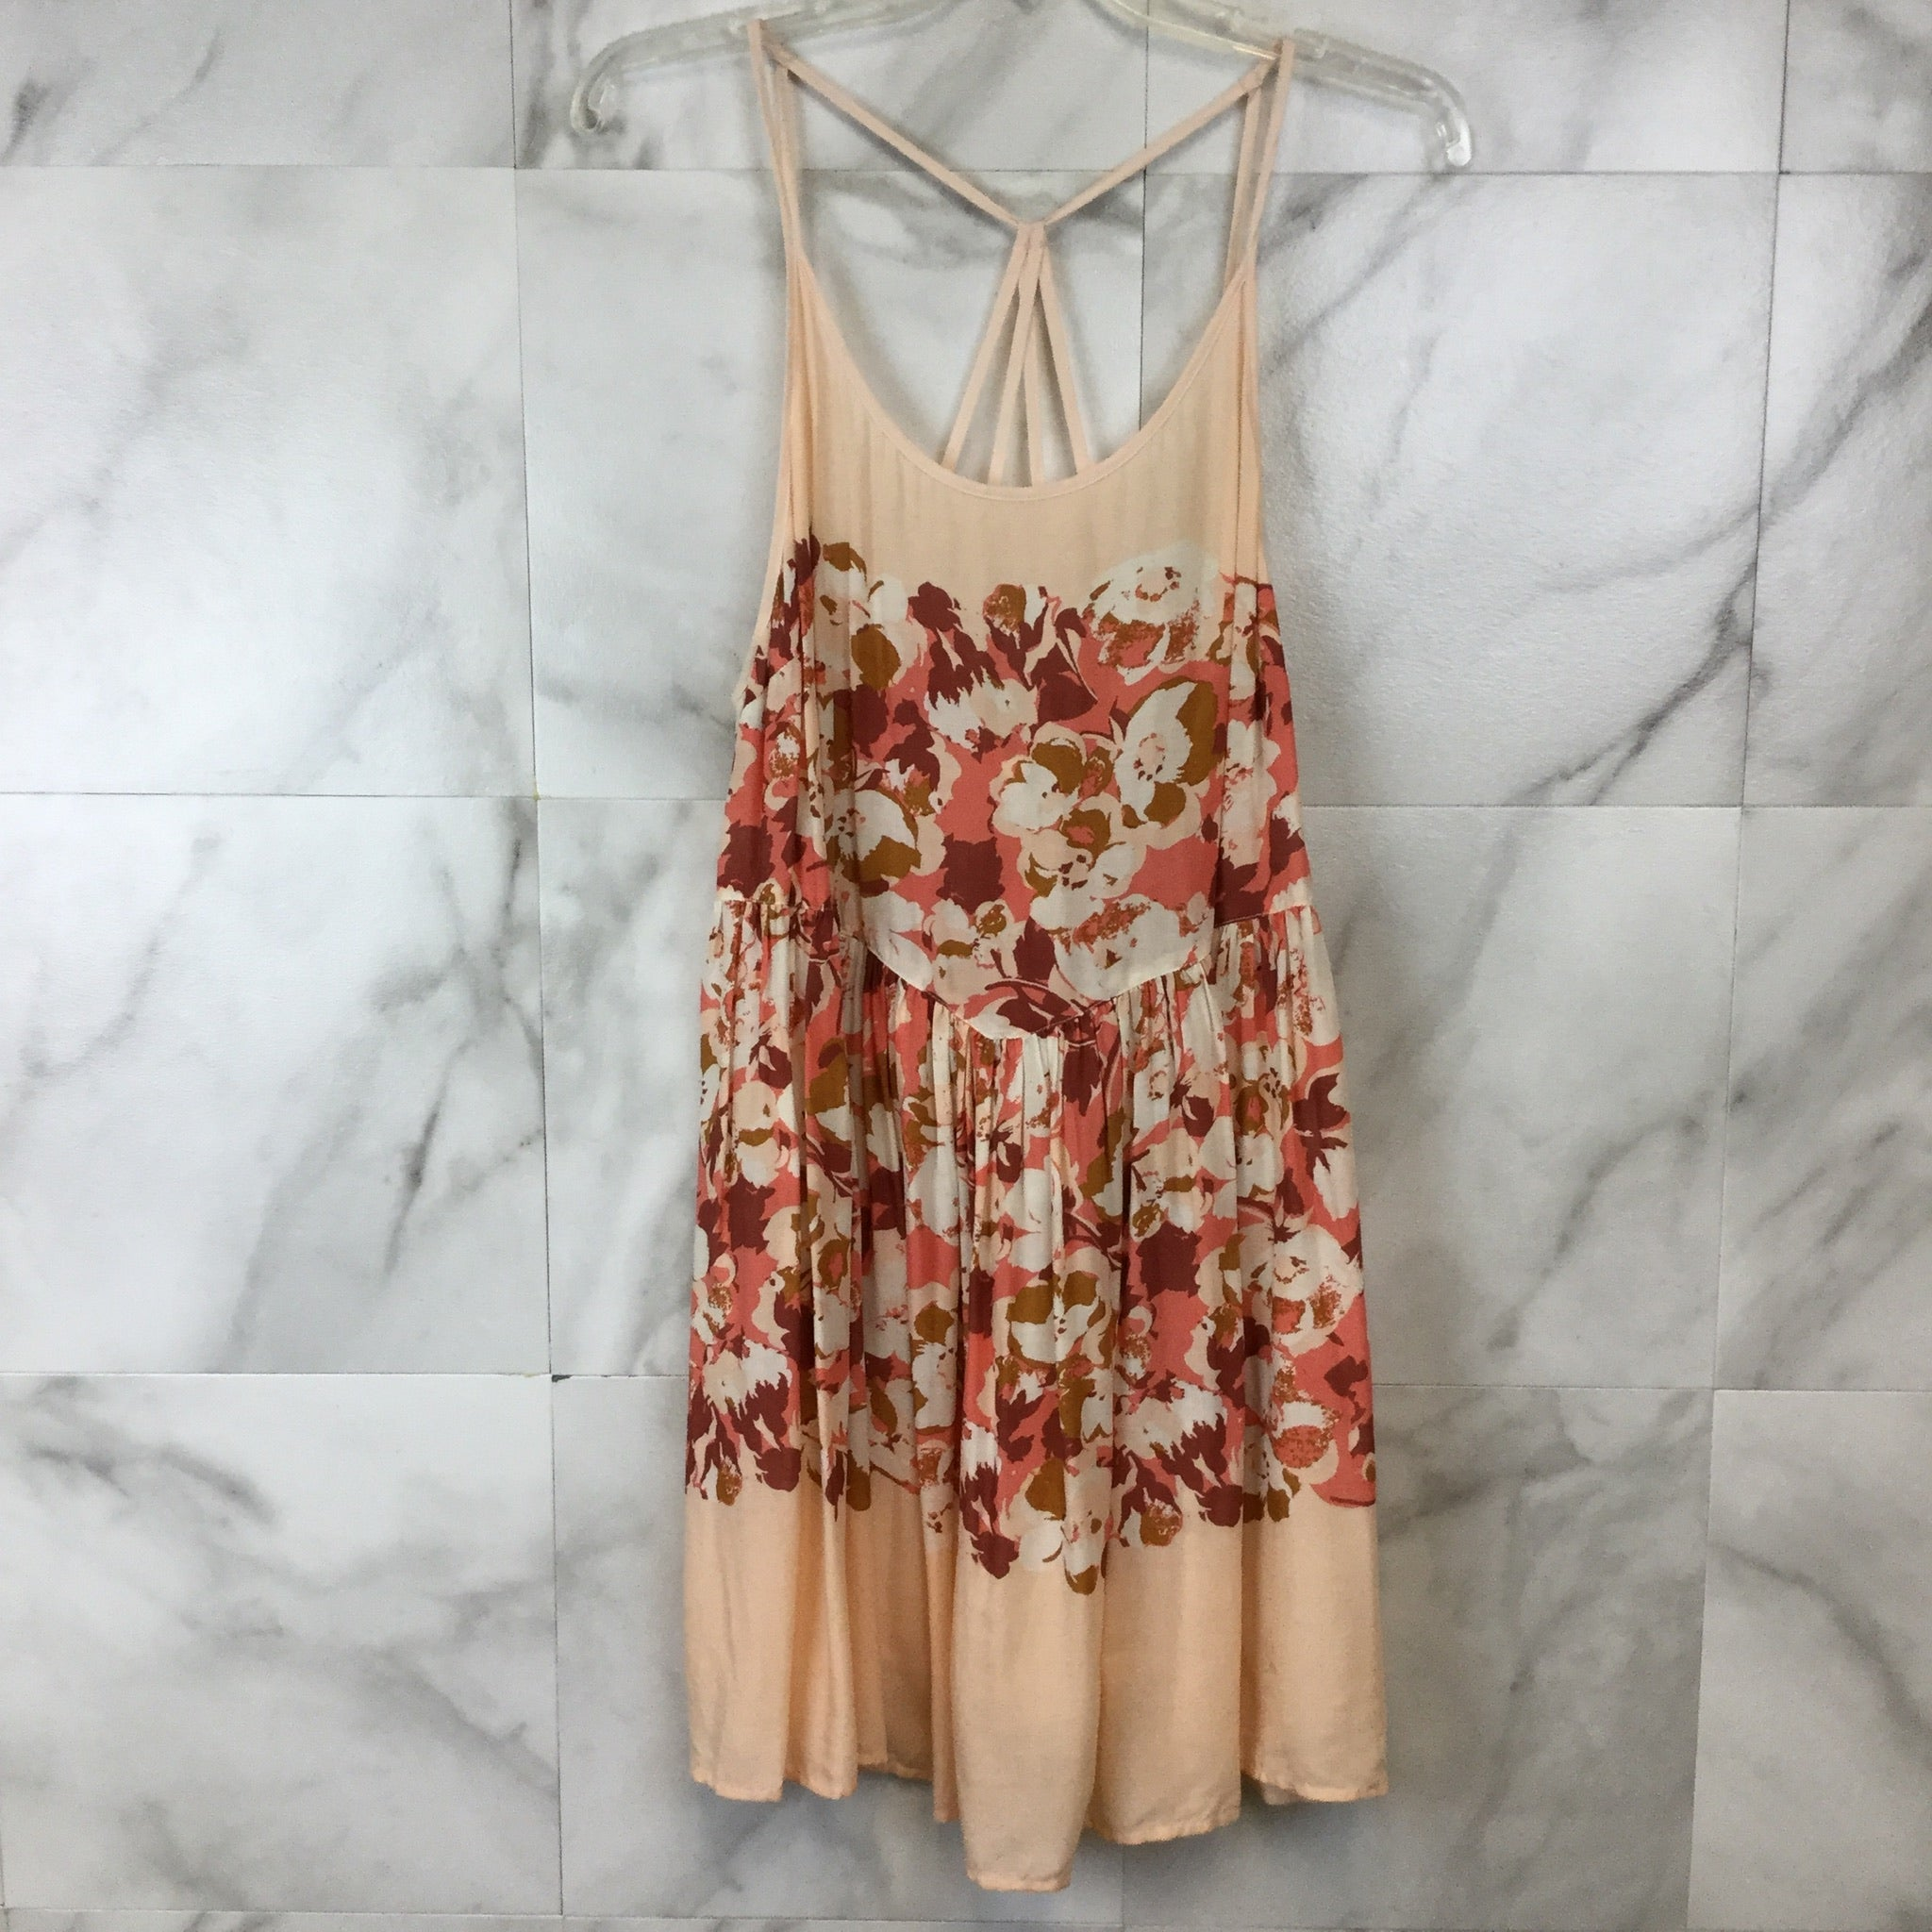 Free People Intimately Floral Voile Shortie Dress - M